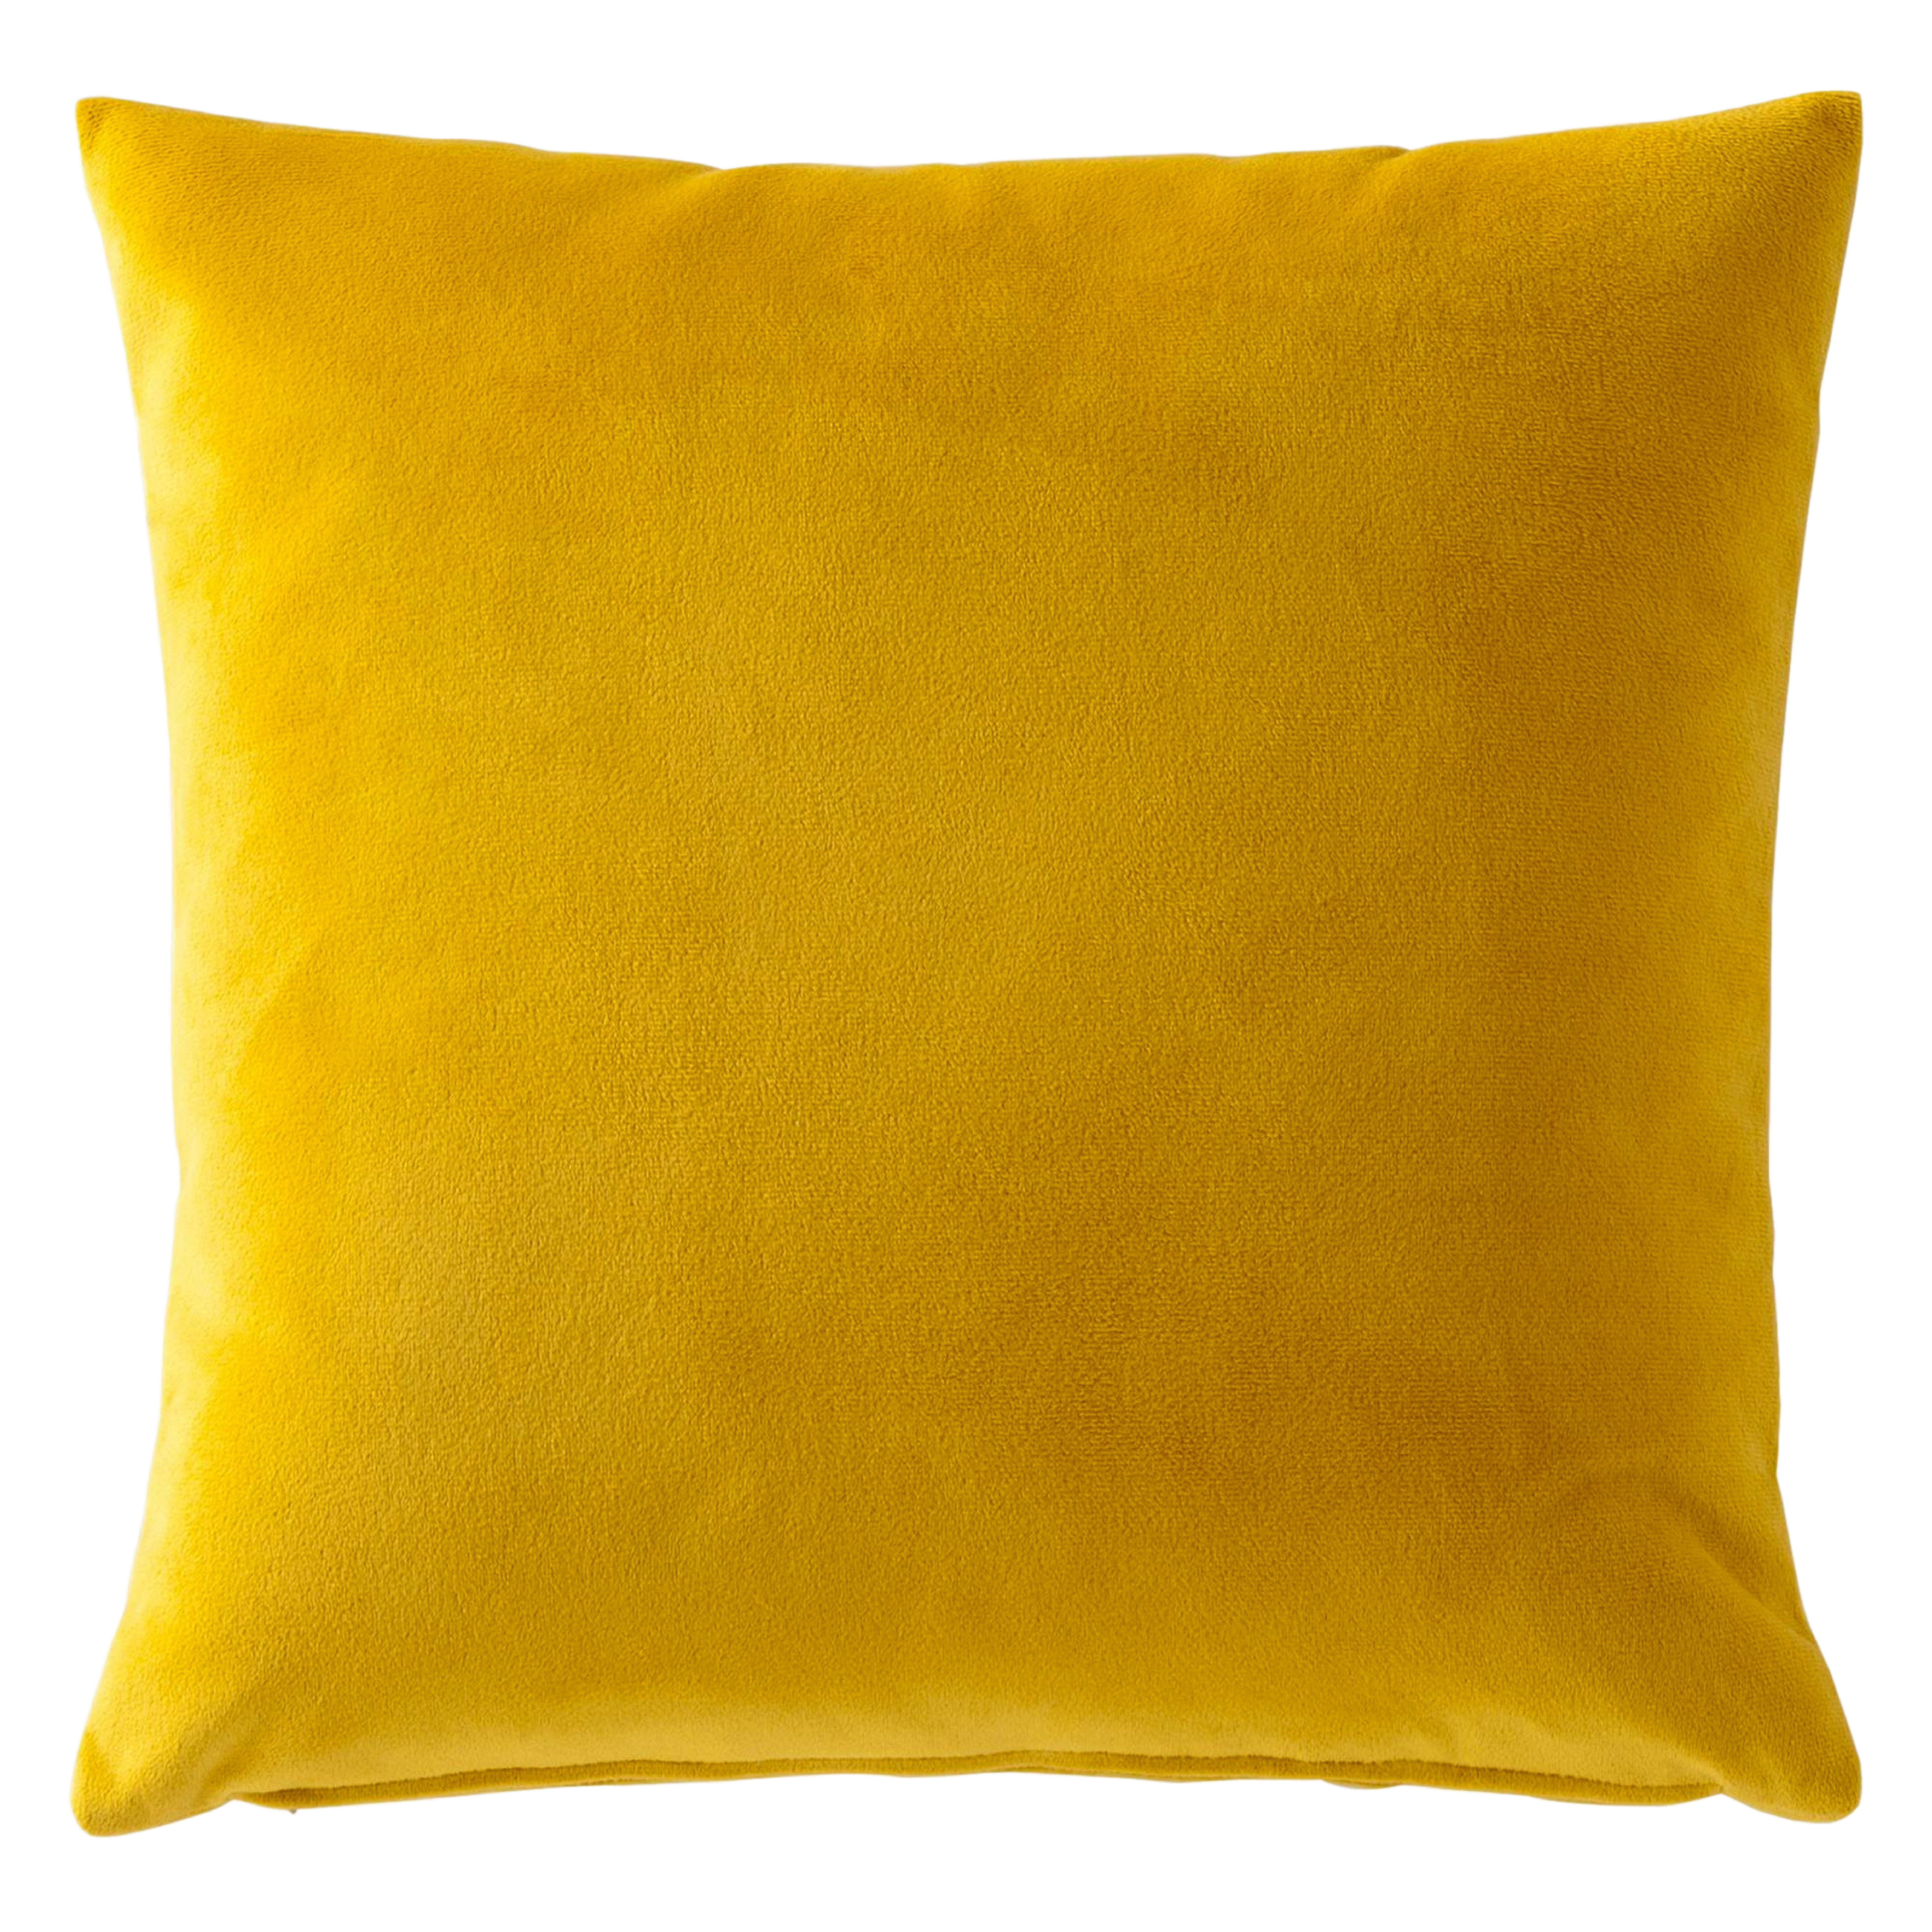 COUSSIN VELOURS JAUNE 3SUISSES COLLECTION – 14,99€